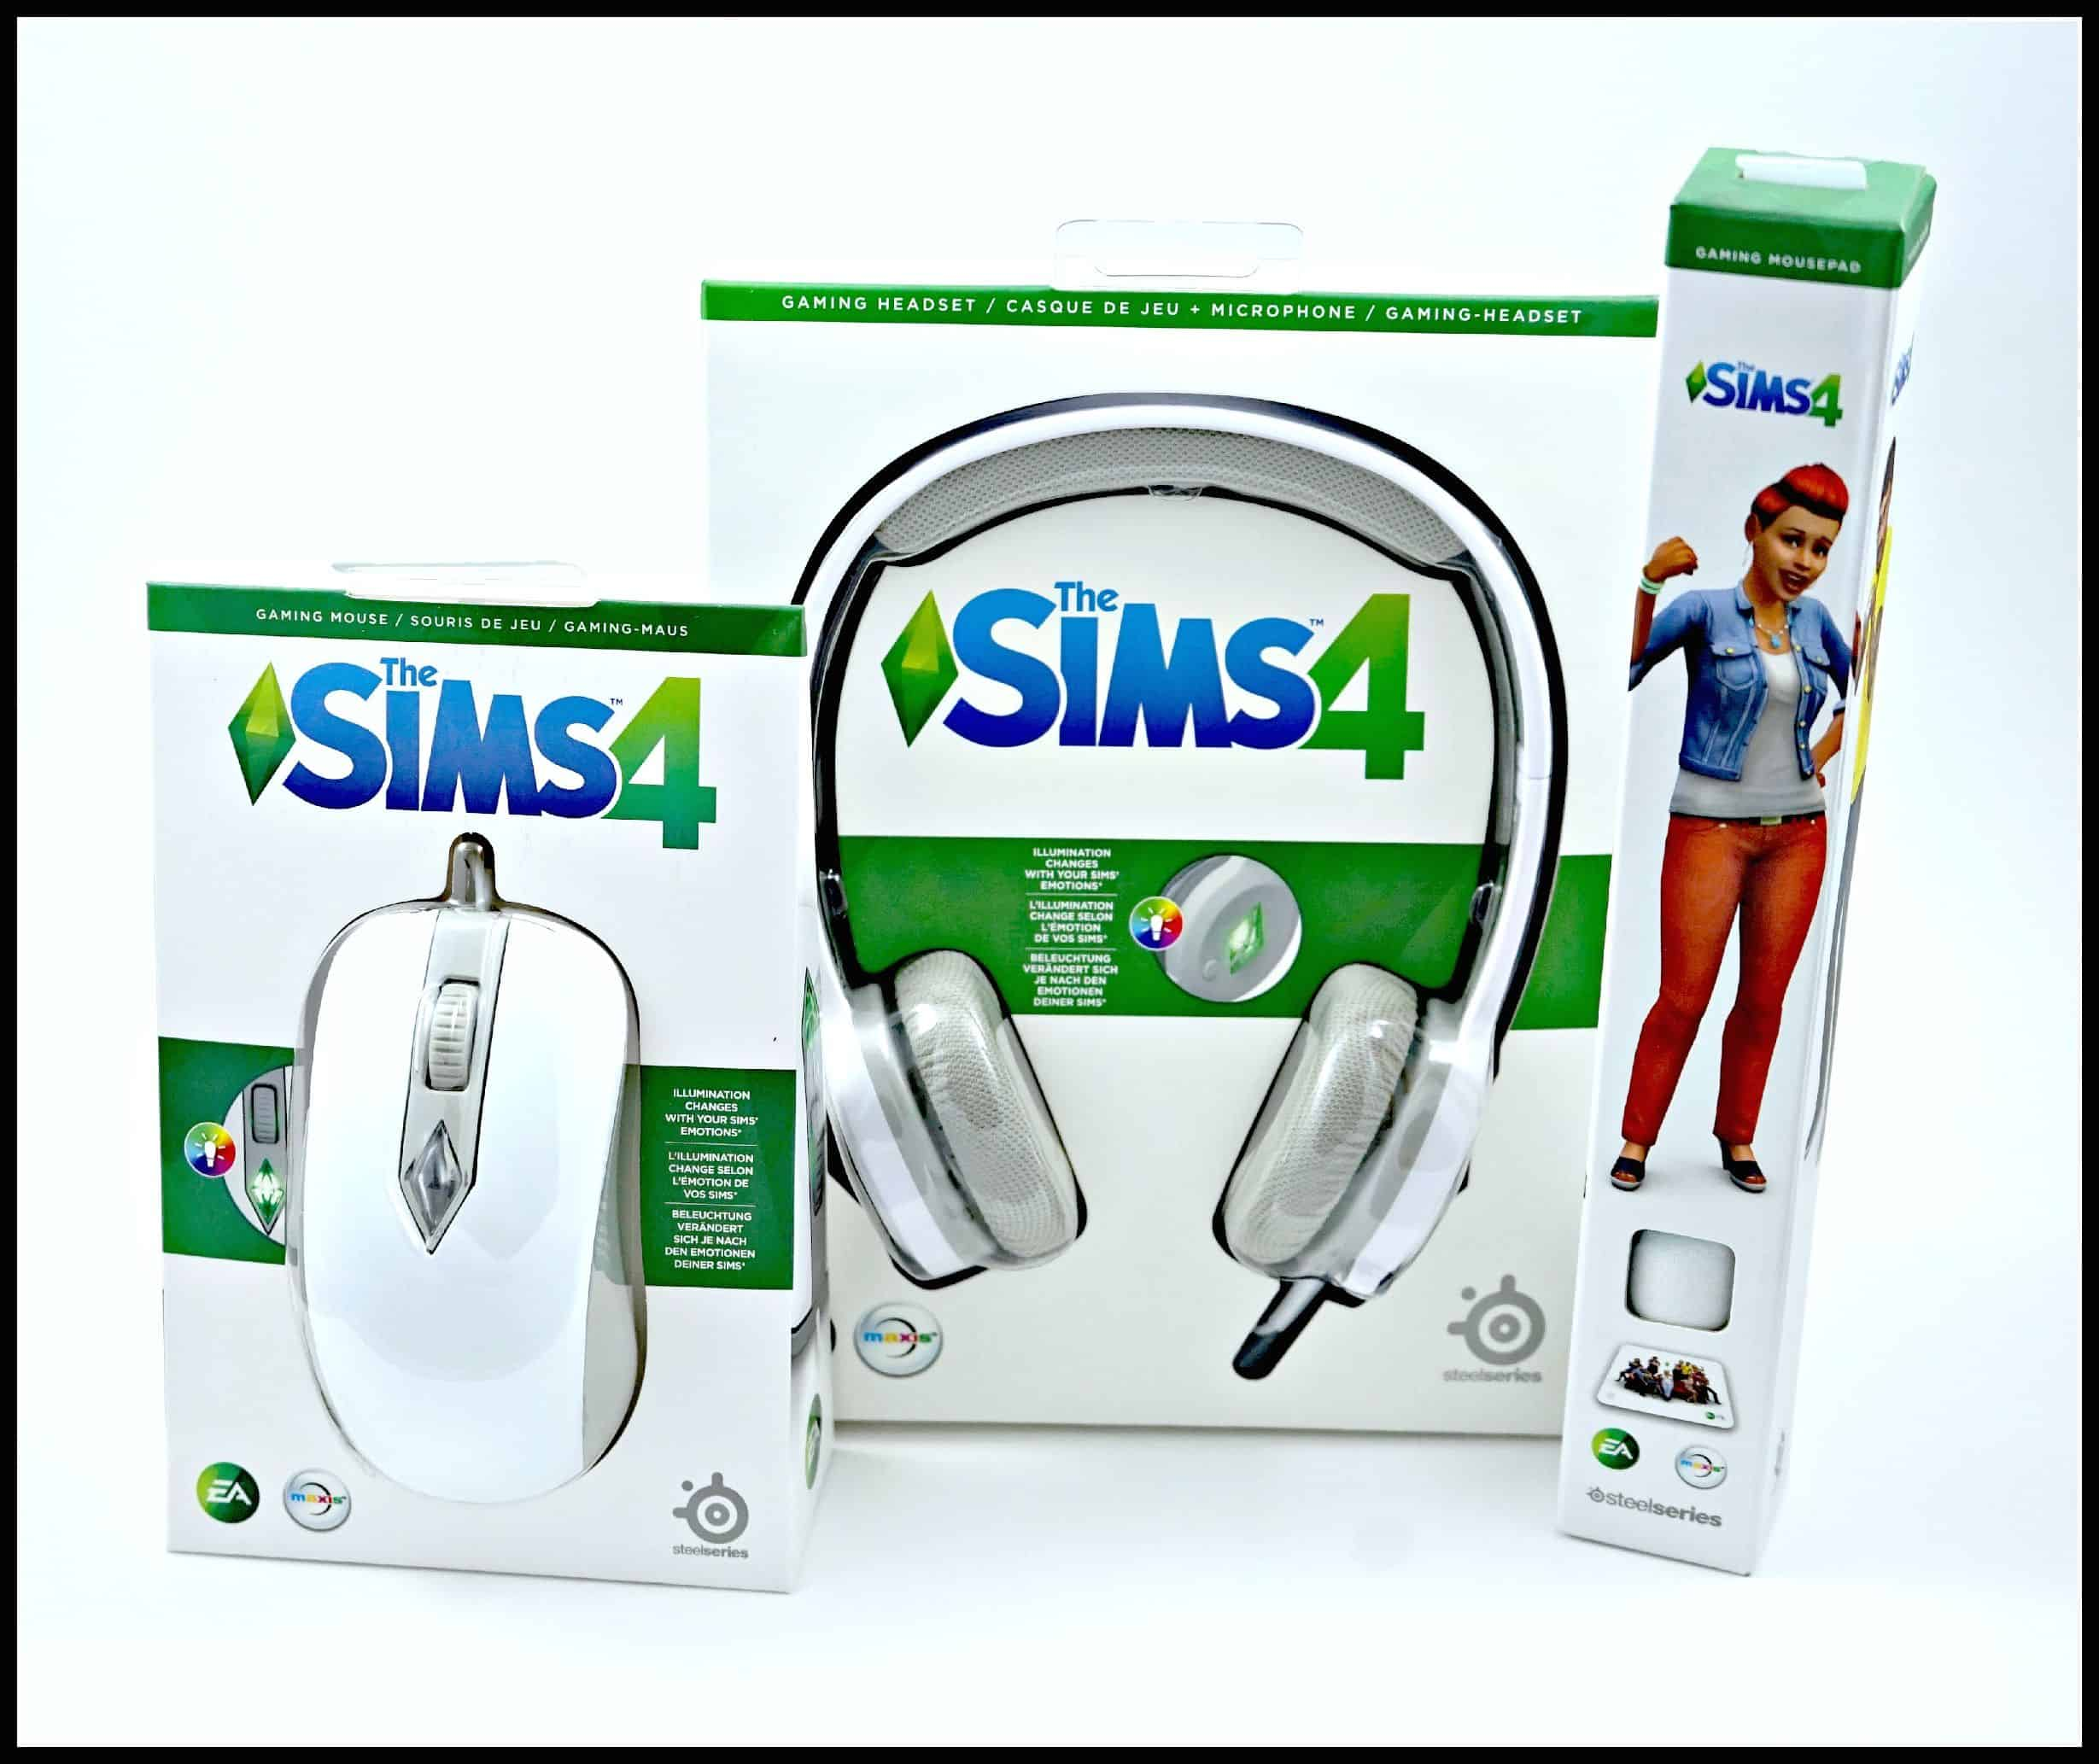 amazon SteelSeries The Sims 4 reviews SteelSeries The Sims 4 on amazon newest SteelSeries The Sims 4 prices of SteelSeries The Sims 4 SteelSeries The Sims 4 deals best deals on SteelSeries The Sims 4 buying a SteelSeries The Sims 4 lastest SteelSeries The Sims 4 what is a SteelSeries The Sims 4 SteelSeries The Sims 4 at amazon where to buy SteelSeries The Sims 4 where can i you get a SteelSeries The Sims 4 online purchase SteelSeries The Sims 4 SteelSeries The Sims 4 sale off SteelSeries The Sims 4 discount cheapest SteelSeries The Sims 4 SteelSeries The Sims 4 for sale